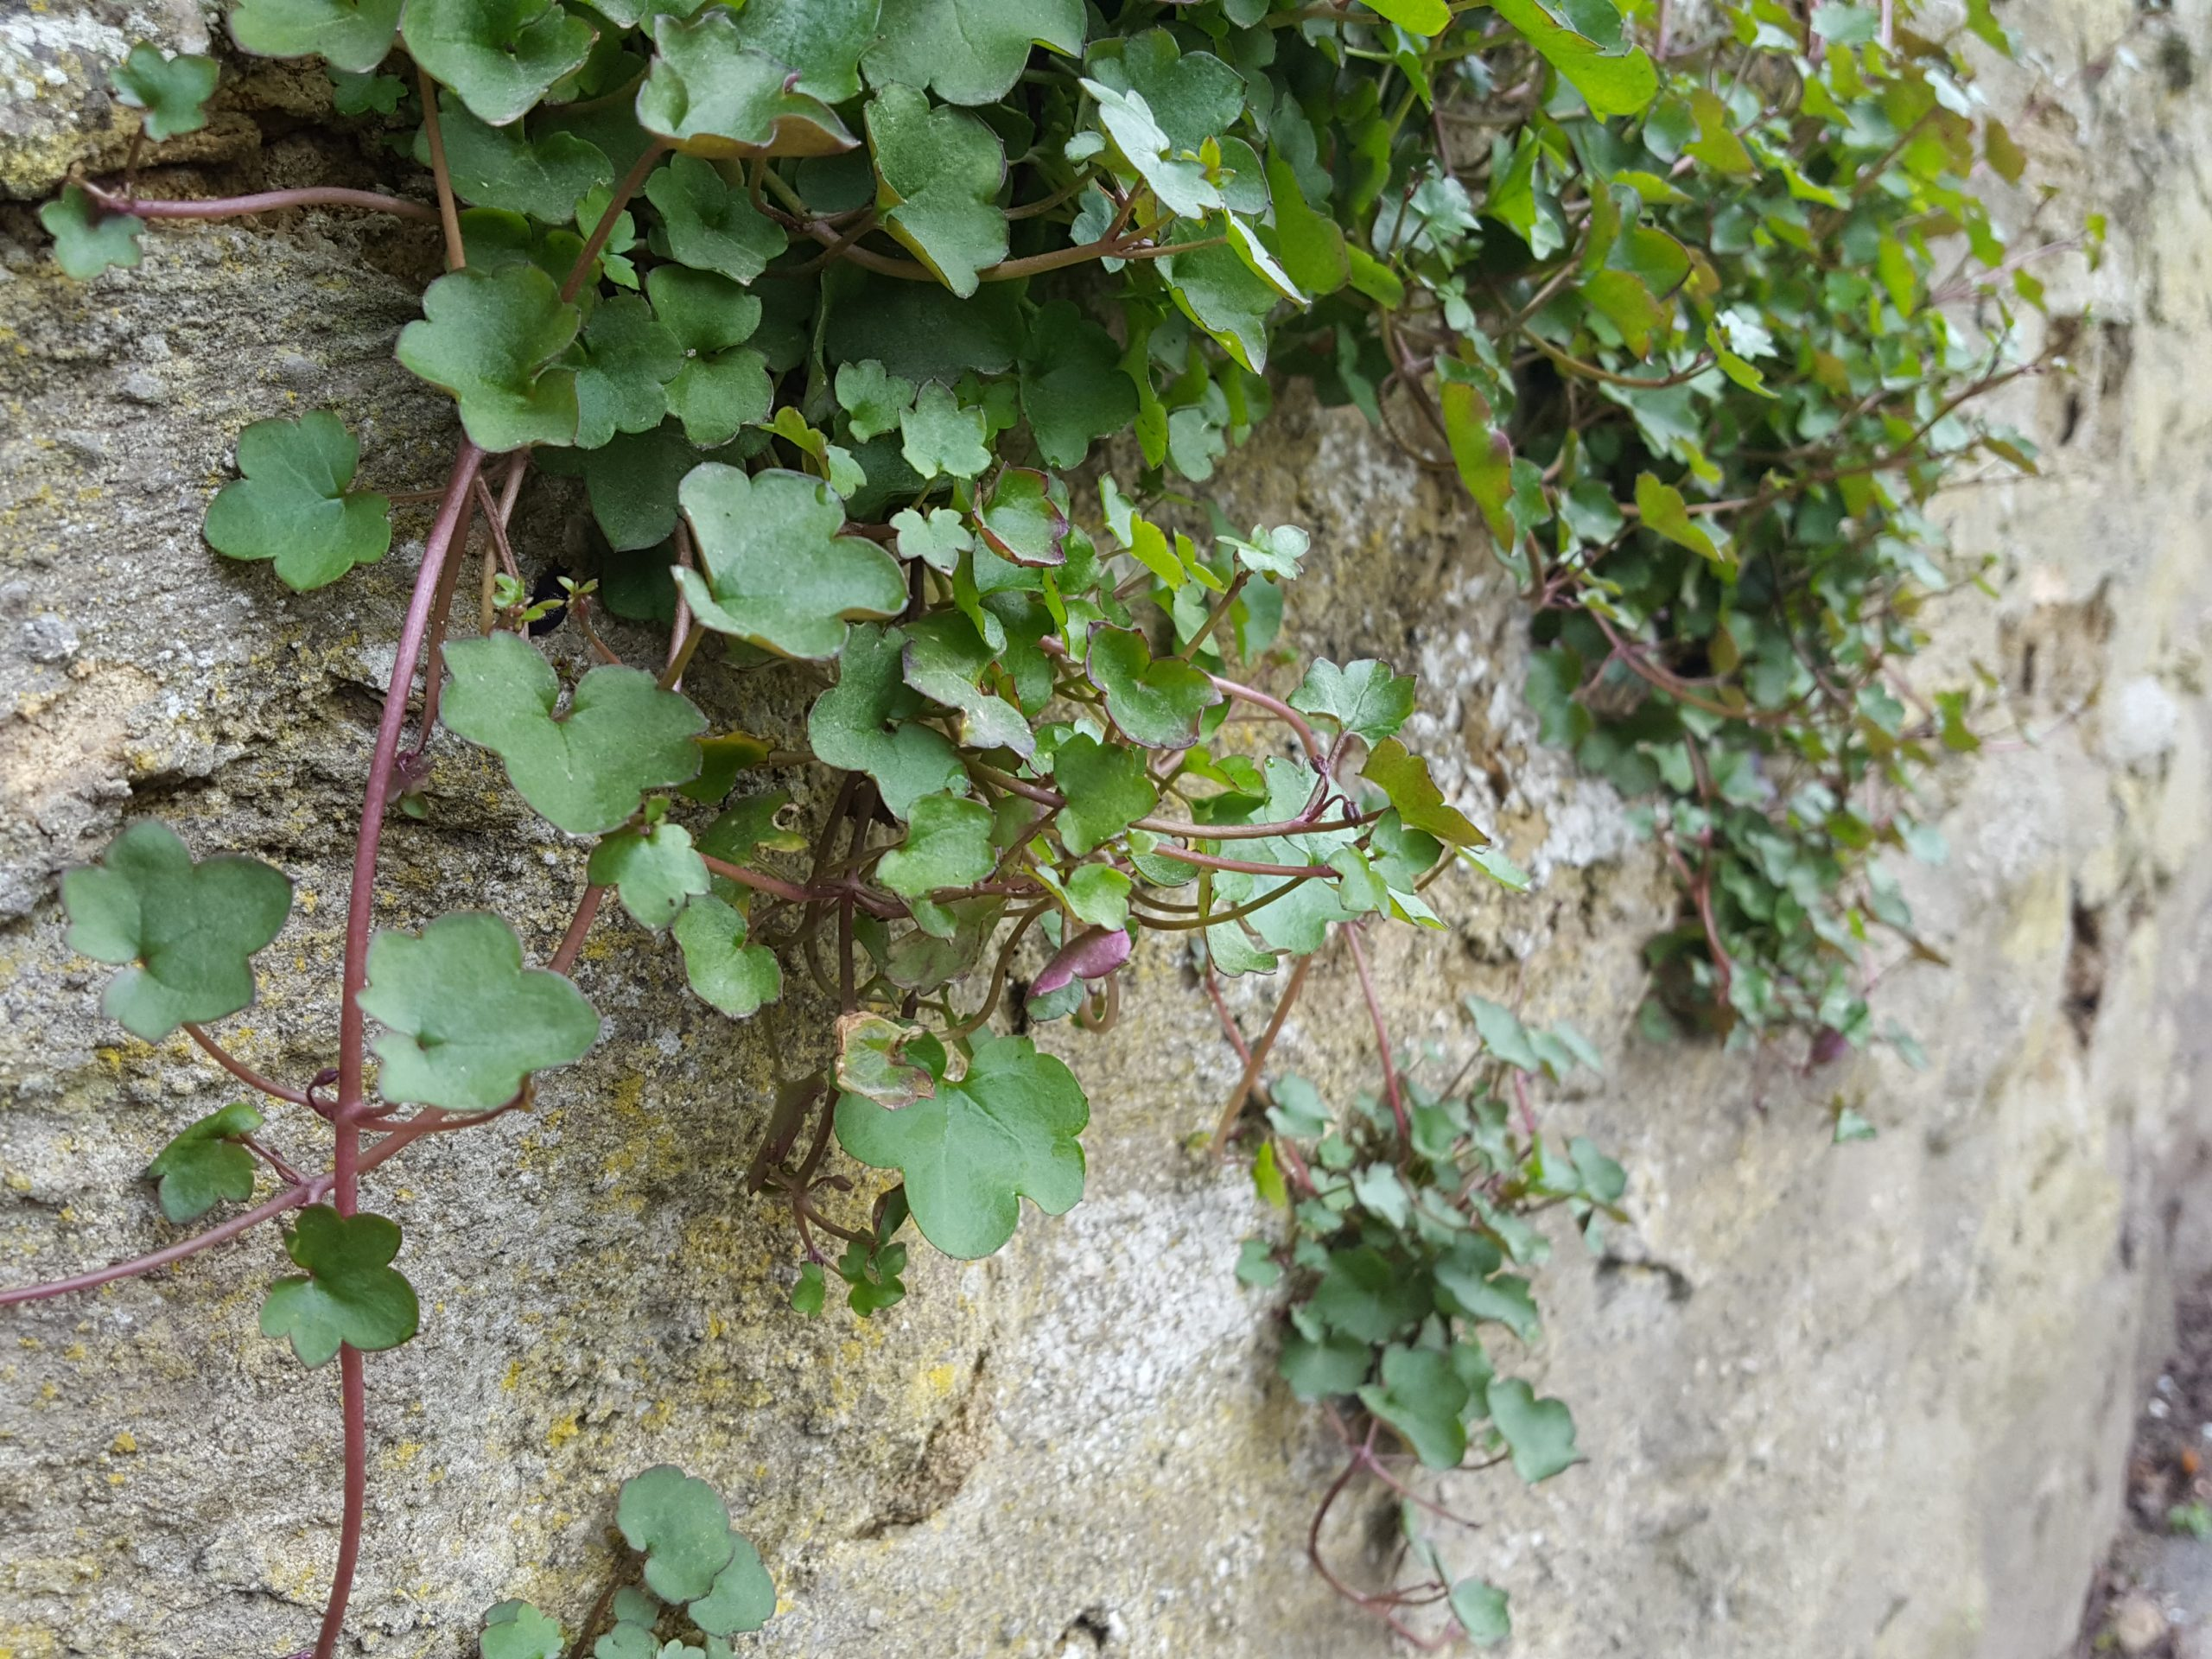 Once established, ivy leaved toadflax starts producing trailing stems which root at the node.